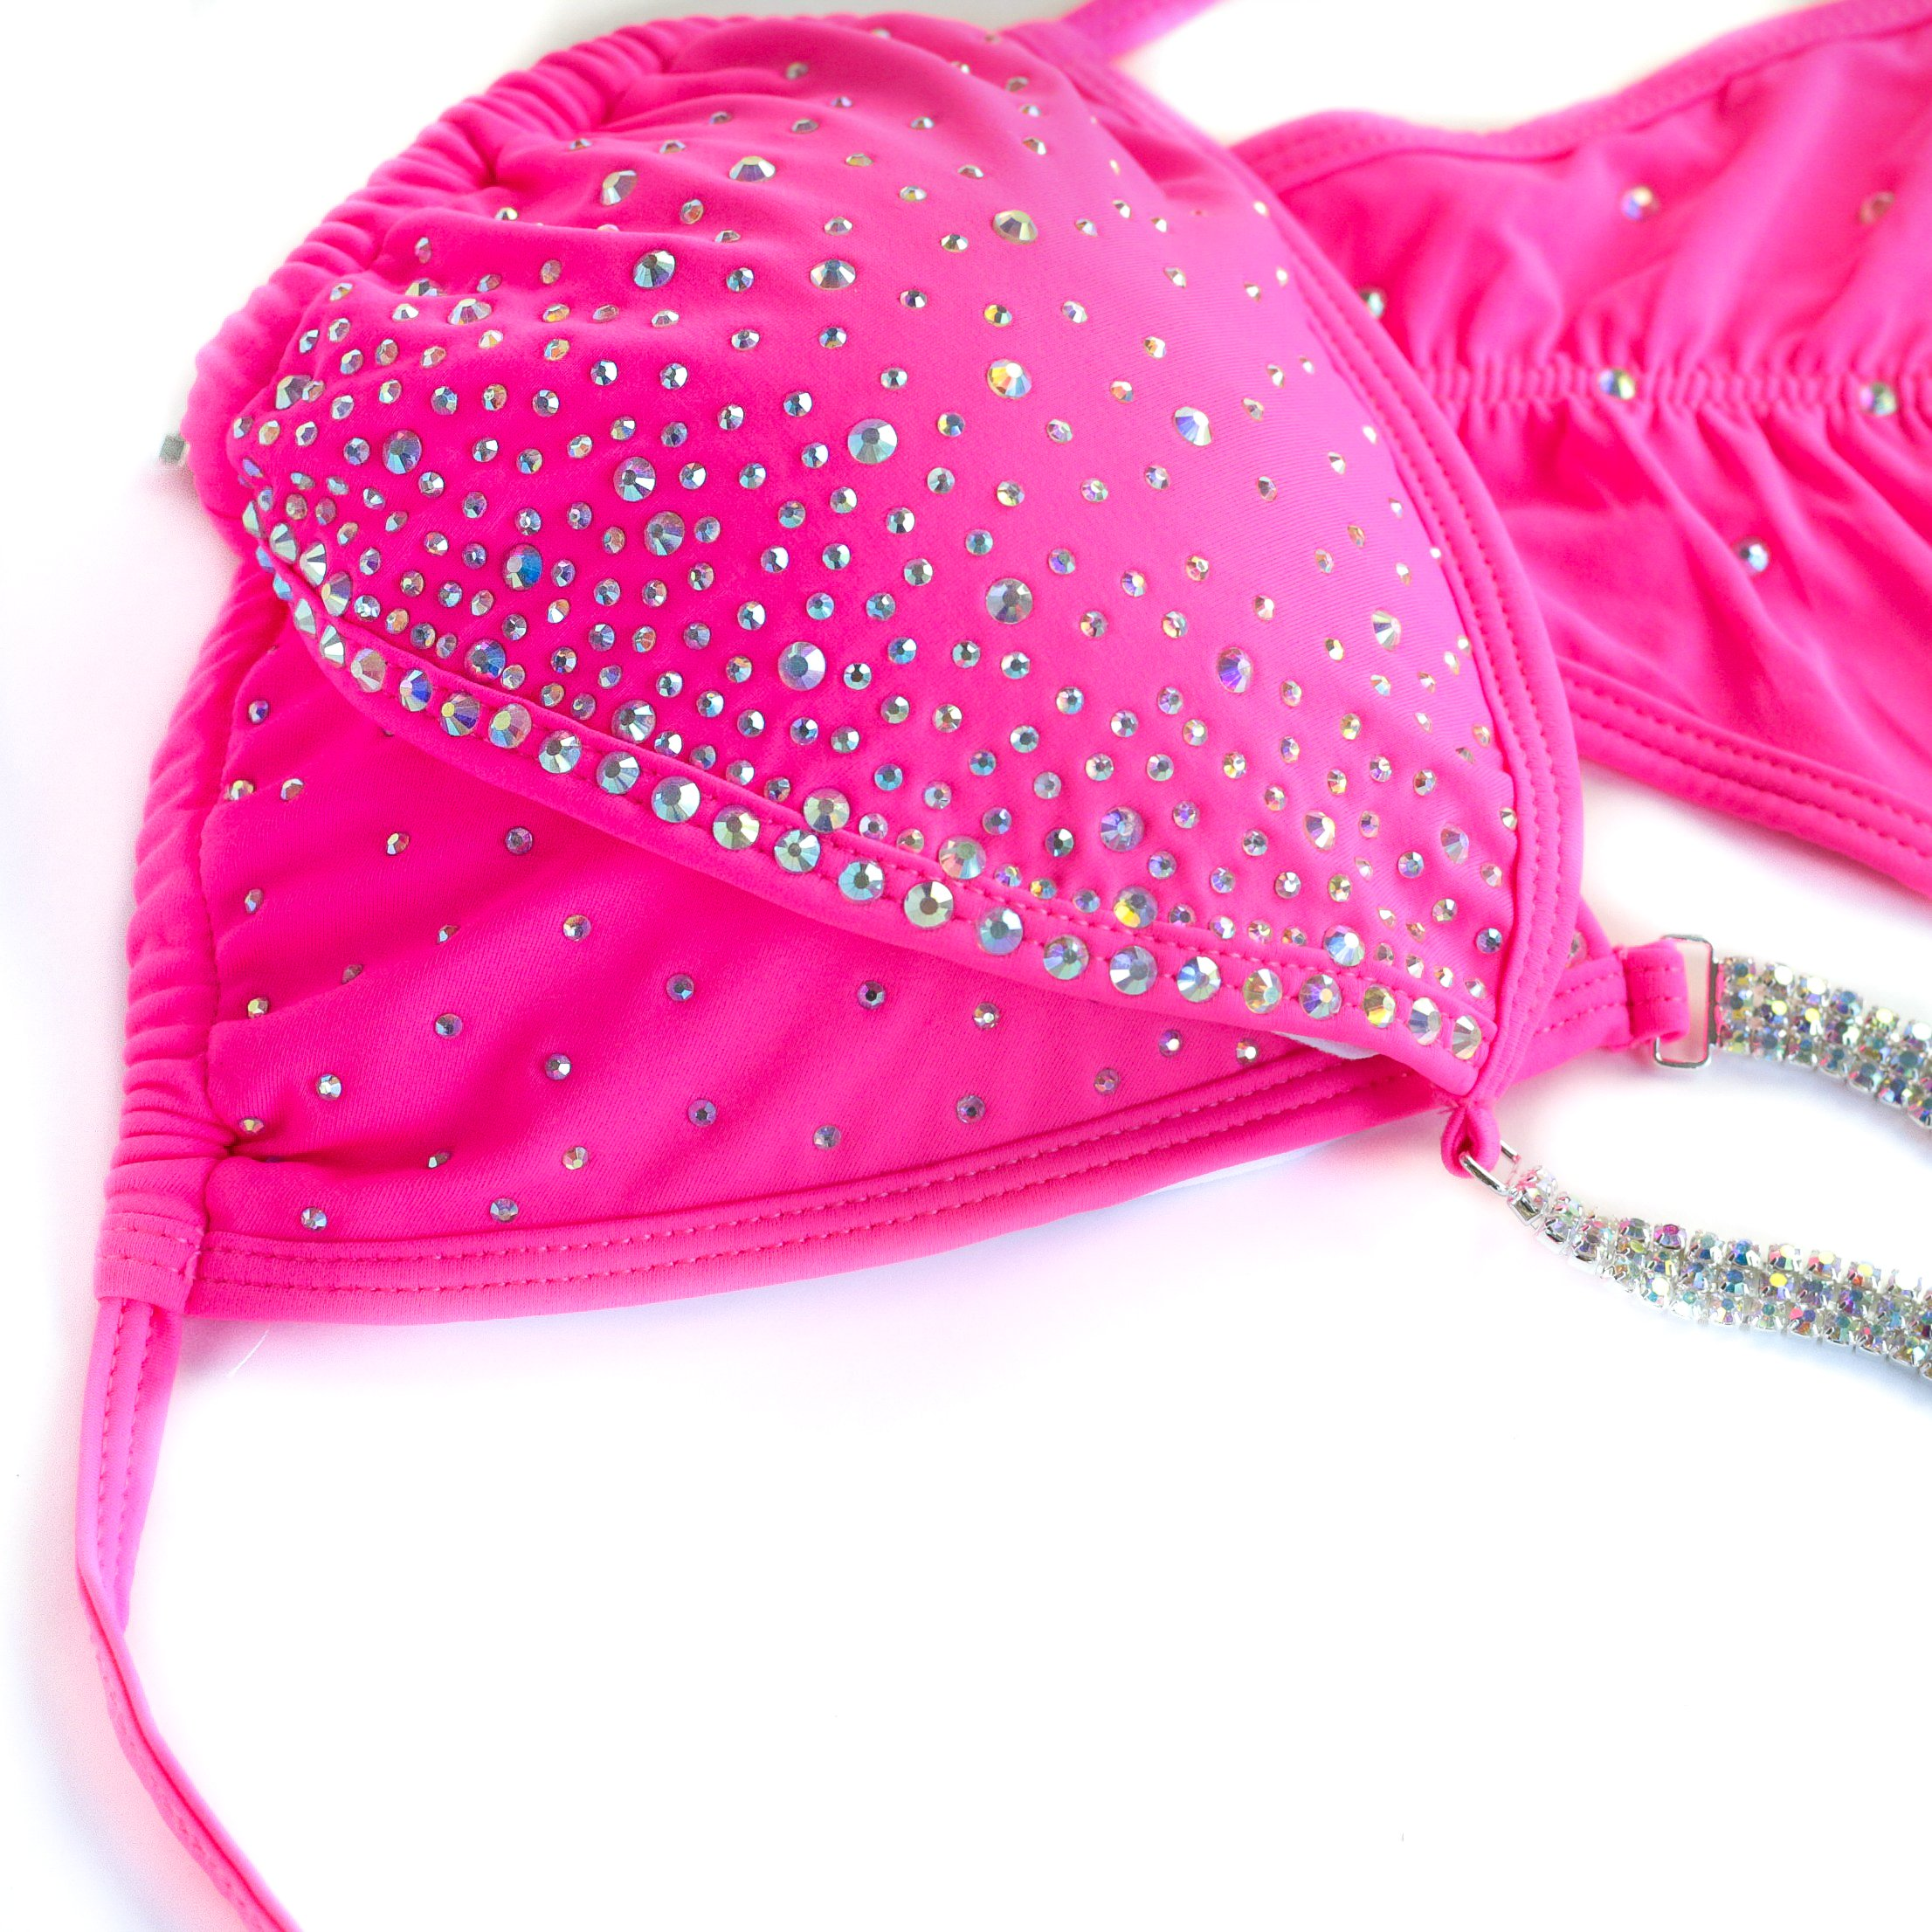 Vicky Ross Fit Competition Bikini Suit NPC IFBB WBFF For Women by With Rhinestone Connectors | Brazilian Scrunch |Pink ((M) B-C-D/Hips 37''-38'' (Cup Dimensions W 7.5''; H) by Vicky Ross Fit (Image #3)